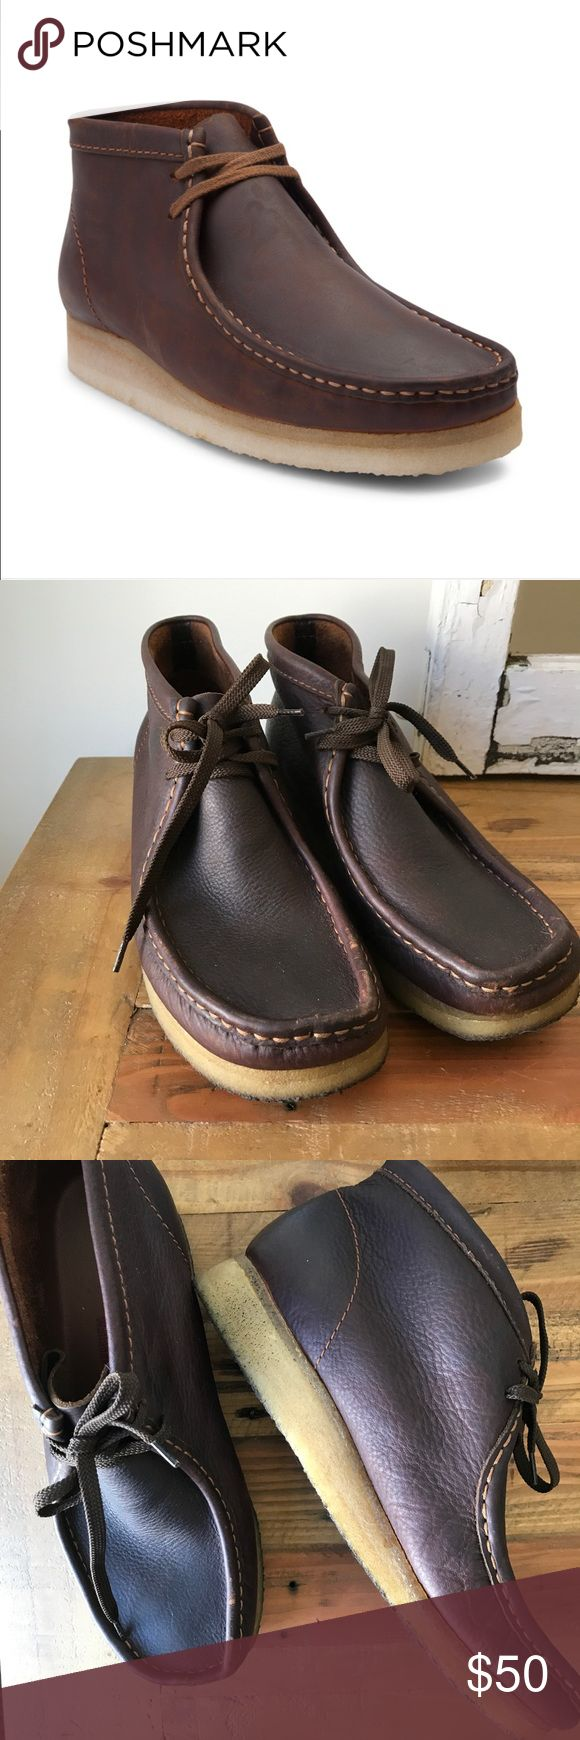 Men's Clarks Original Wallabees Classic Wallabee casual boots. These deep Mahogany leather Wallabees are perfect for Fall. So cushiony and soft! Worn maybe twice by my husband. Excellent Condition. Clarks Shoes Boots